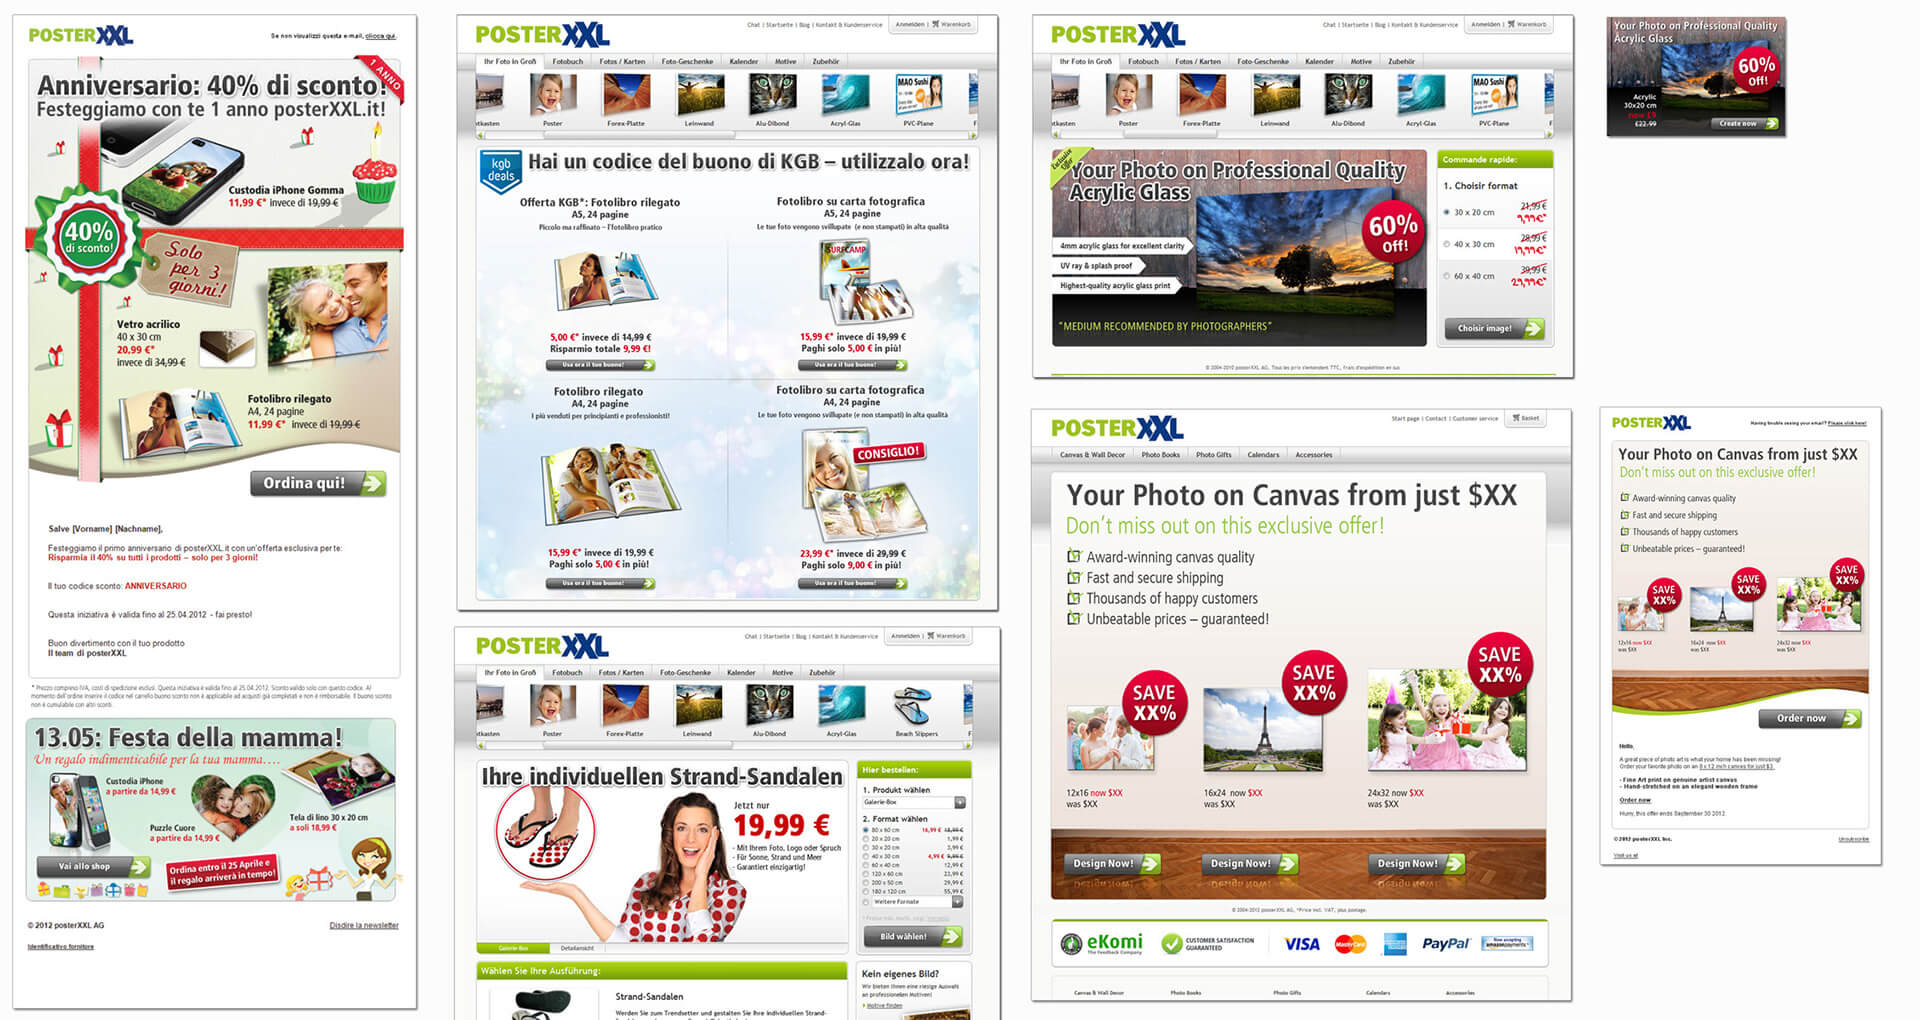 webdesign online marketing responsive wordpress html5 css newsletter banner 24